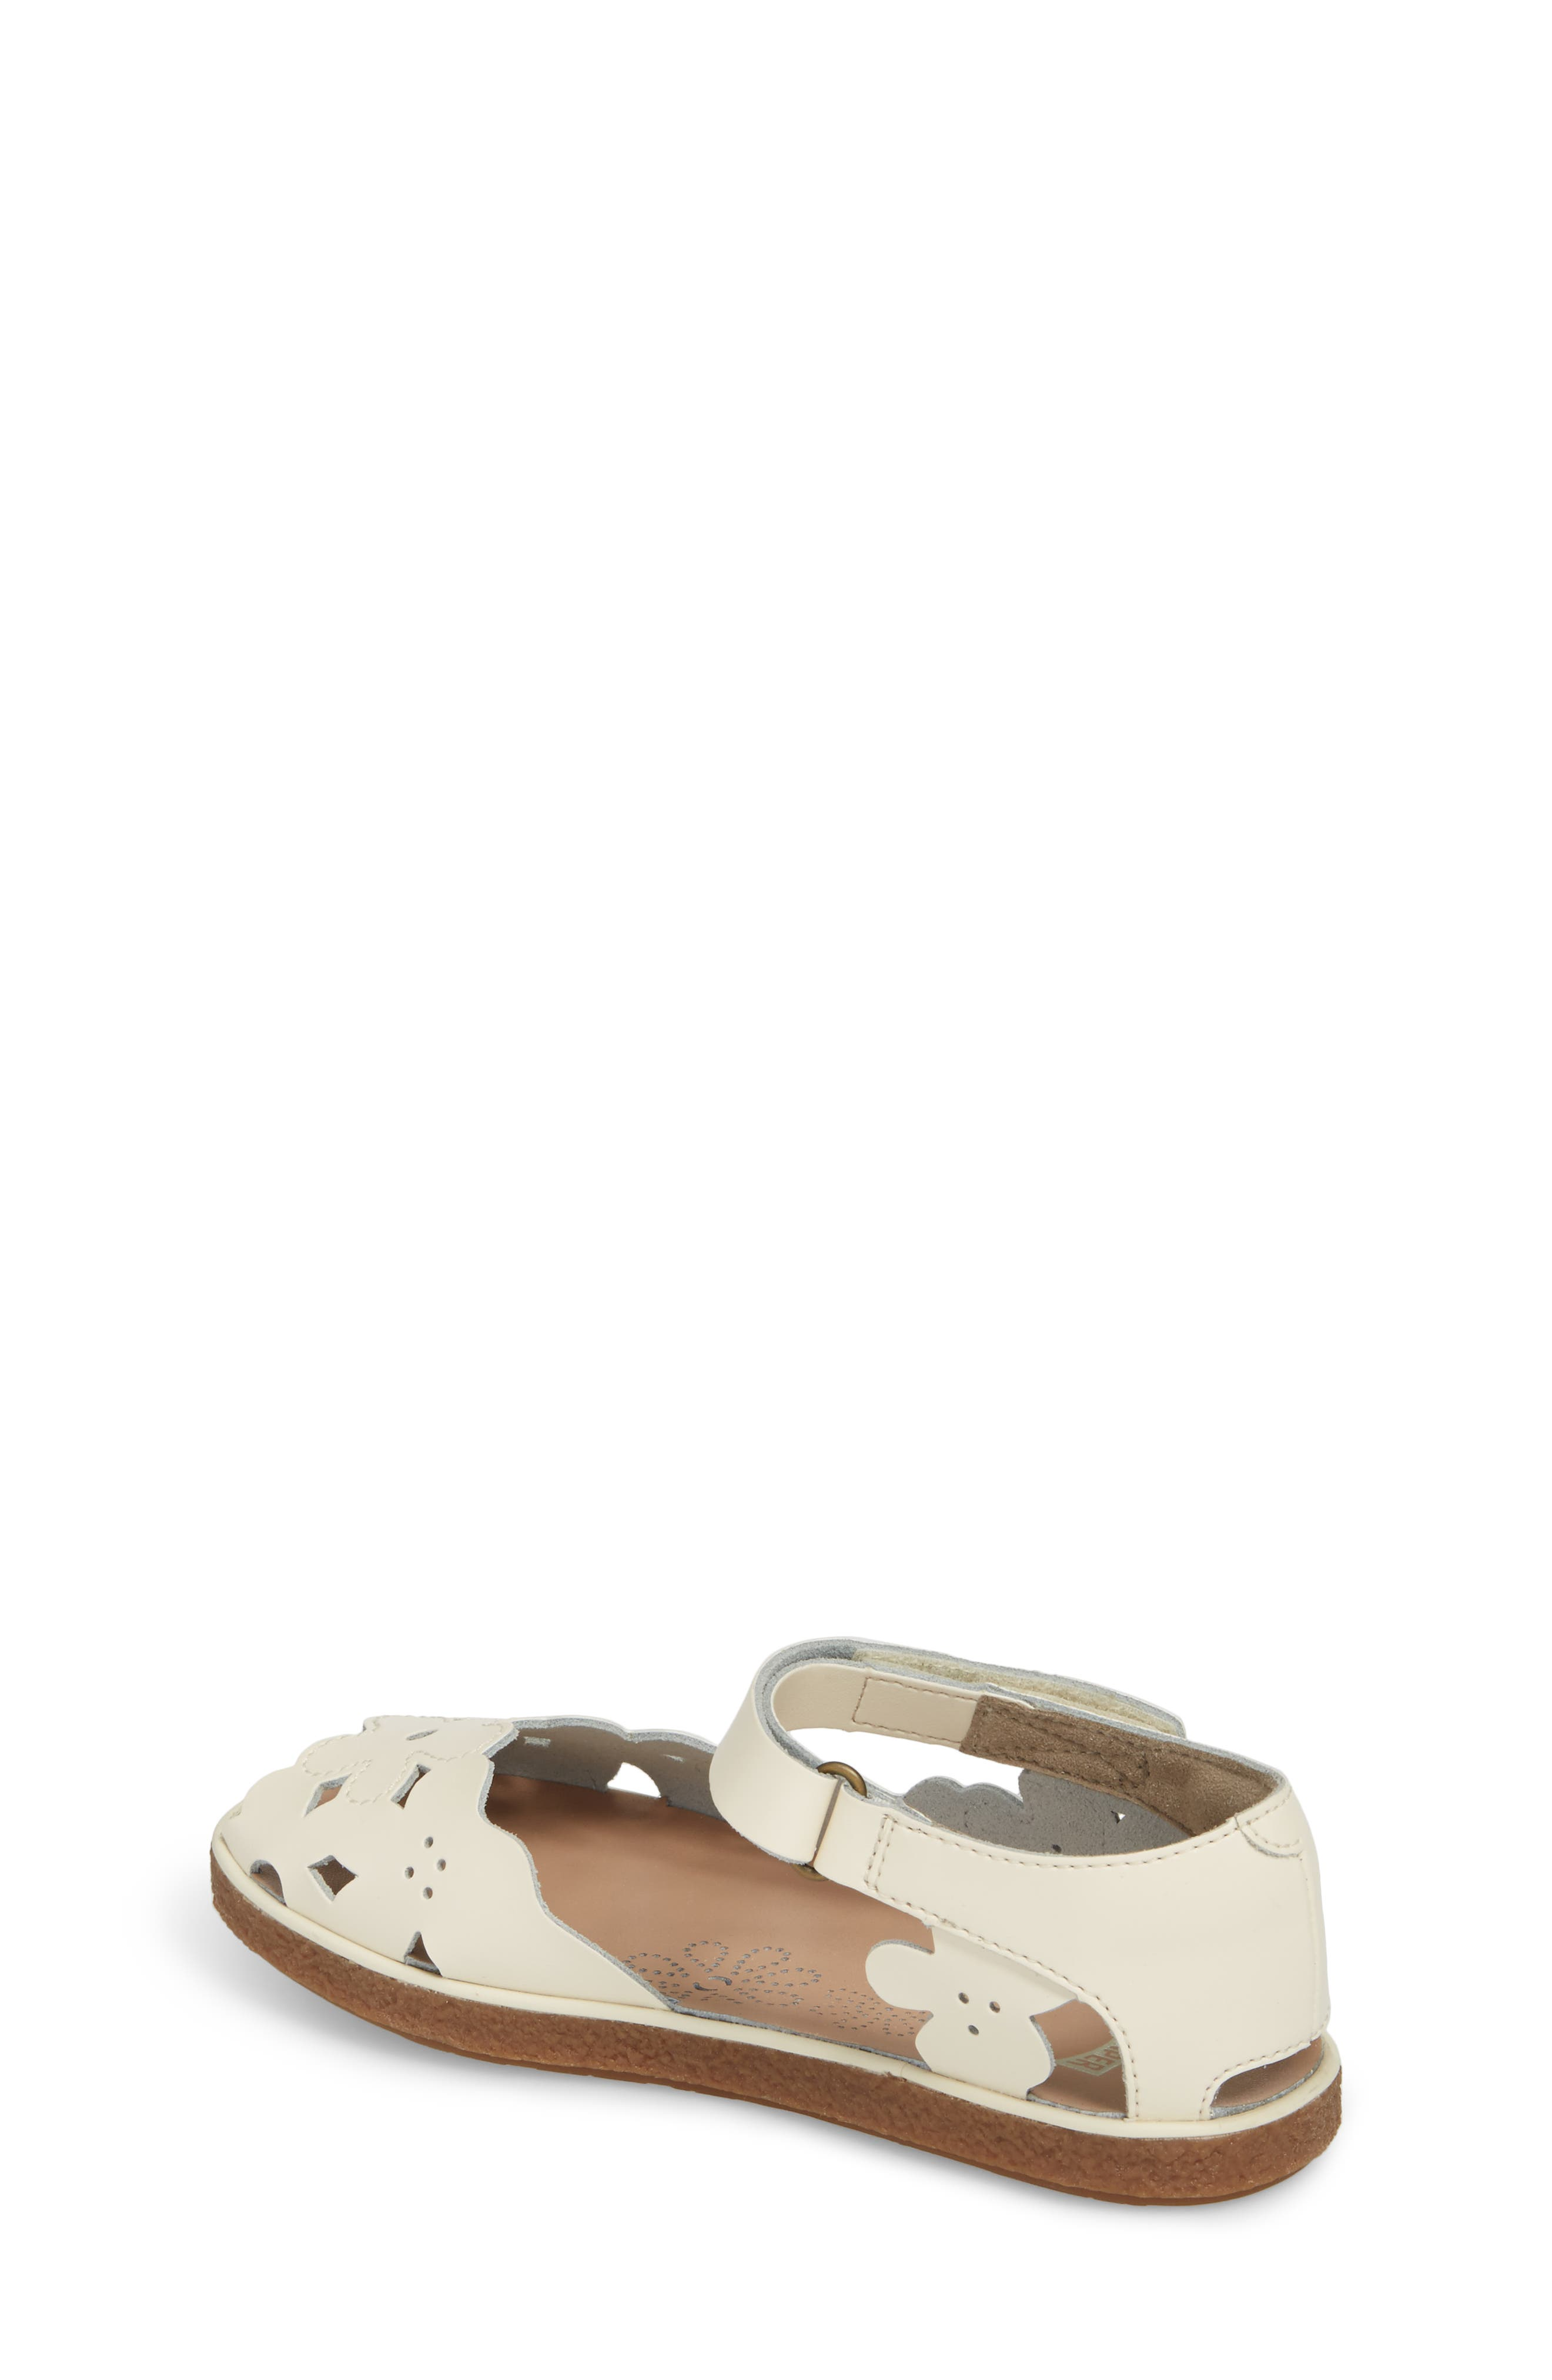 Twins Perforated Sandal,                             Alternate thumbnail 2, color,                             WHITE